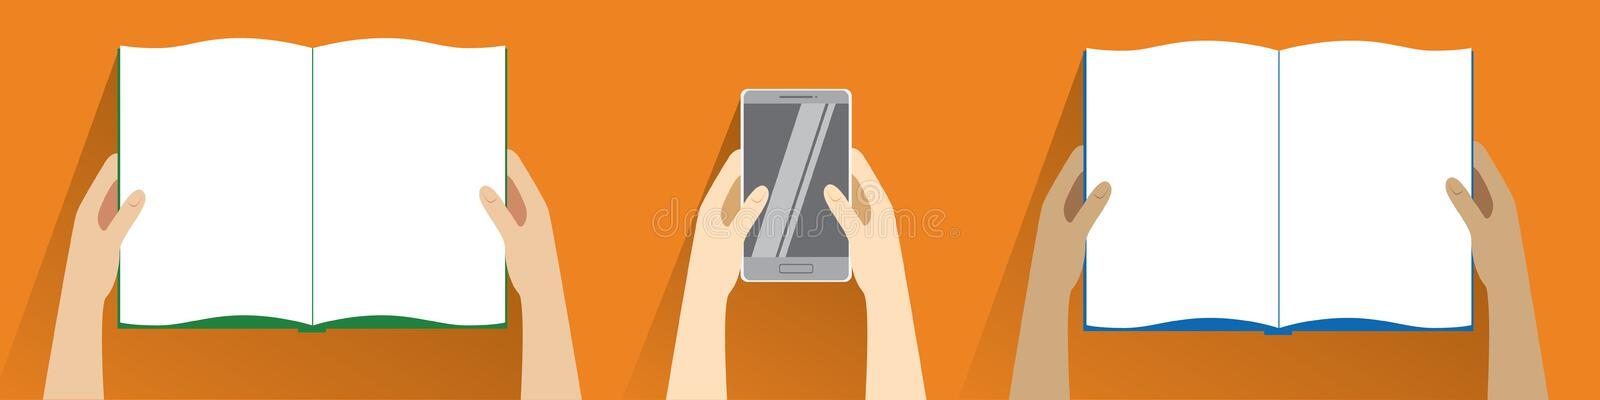 Hands holding open book and smartphone. Top view. vector illustration